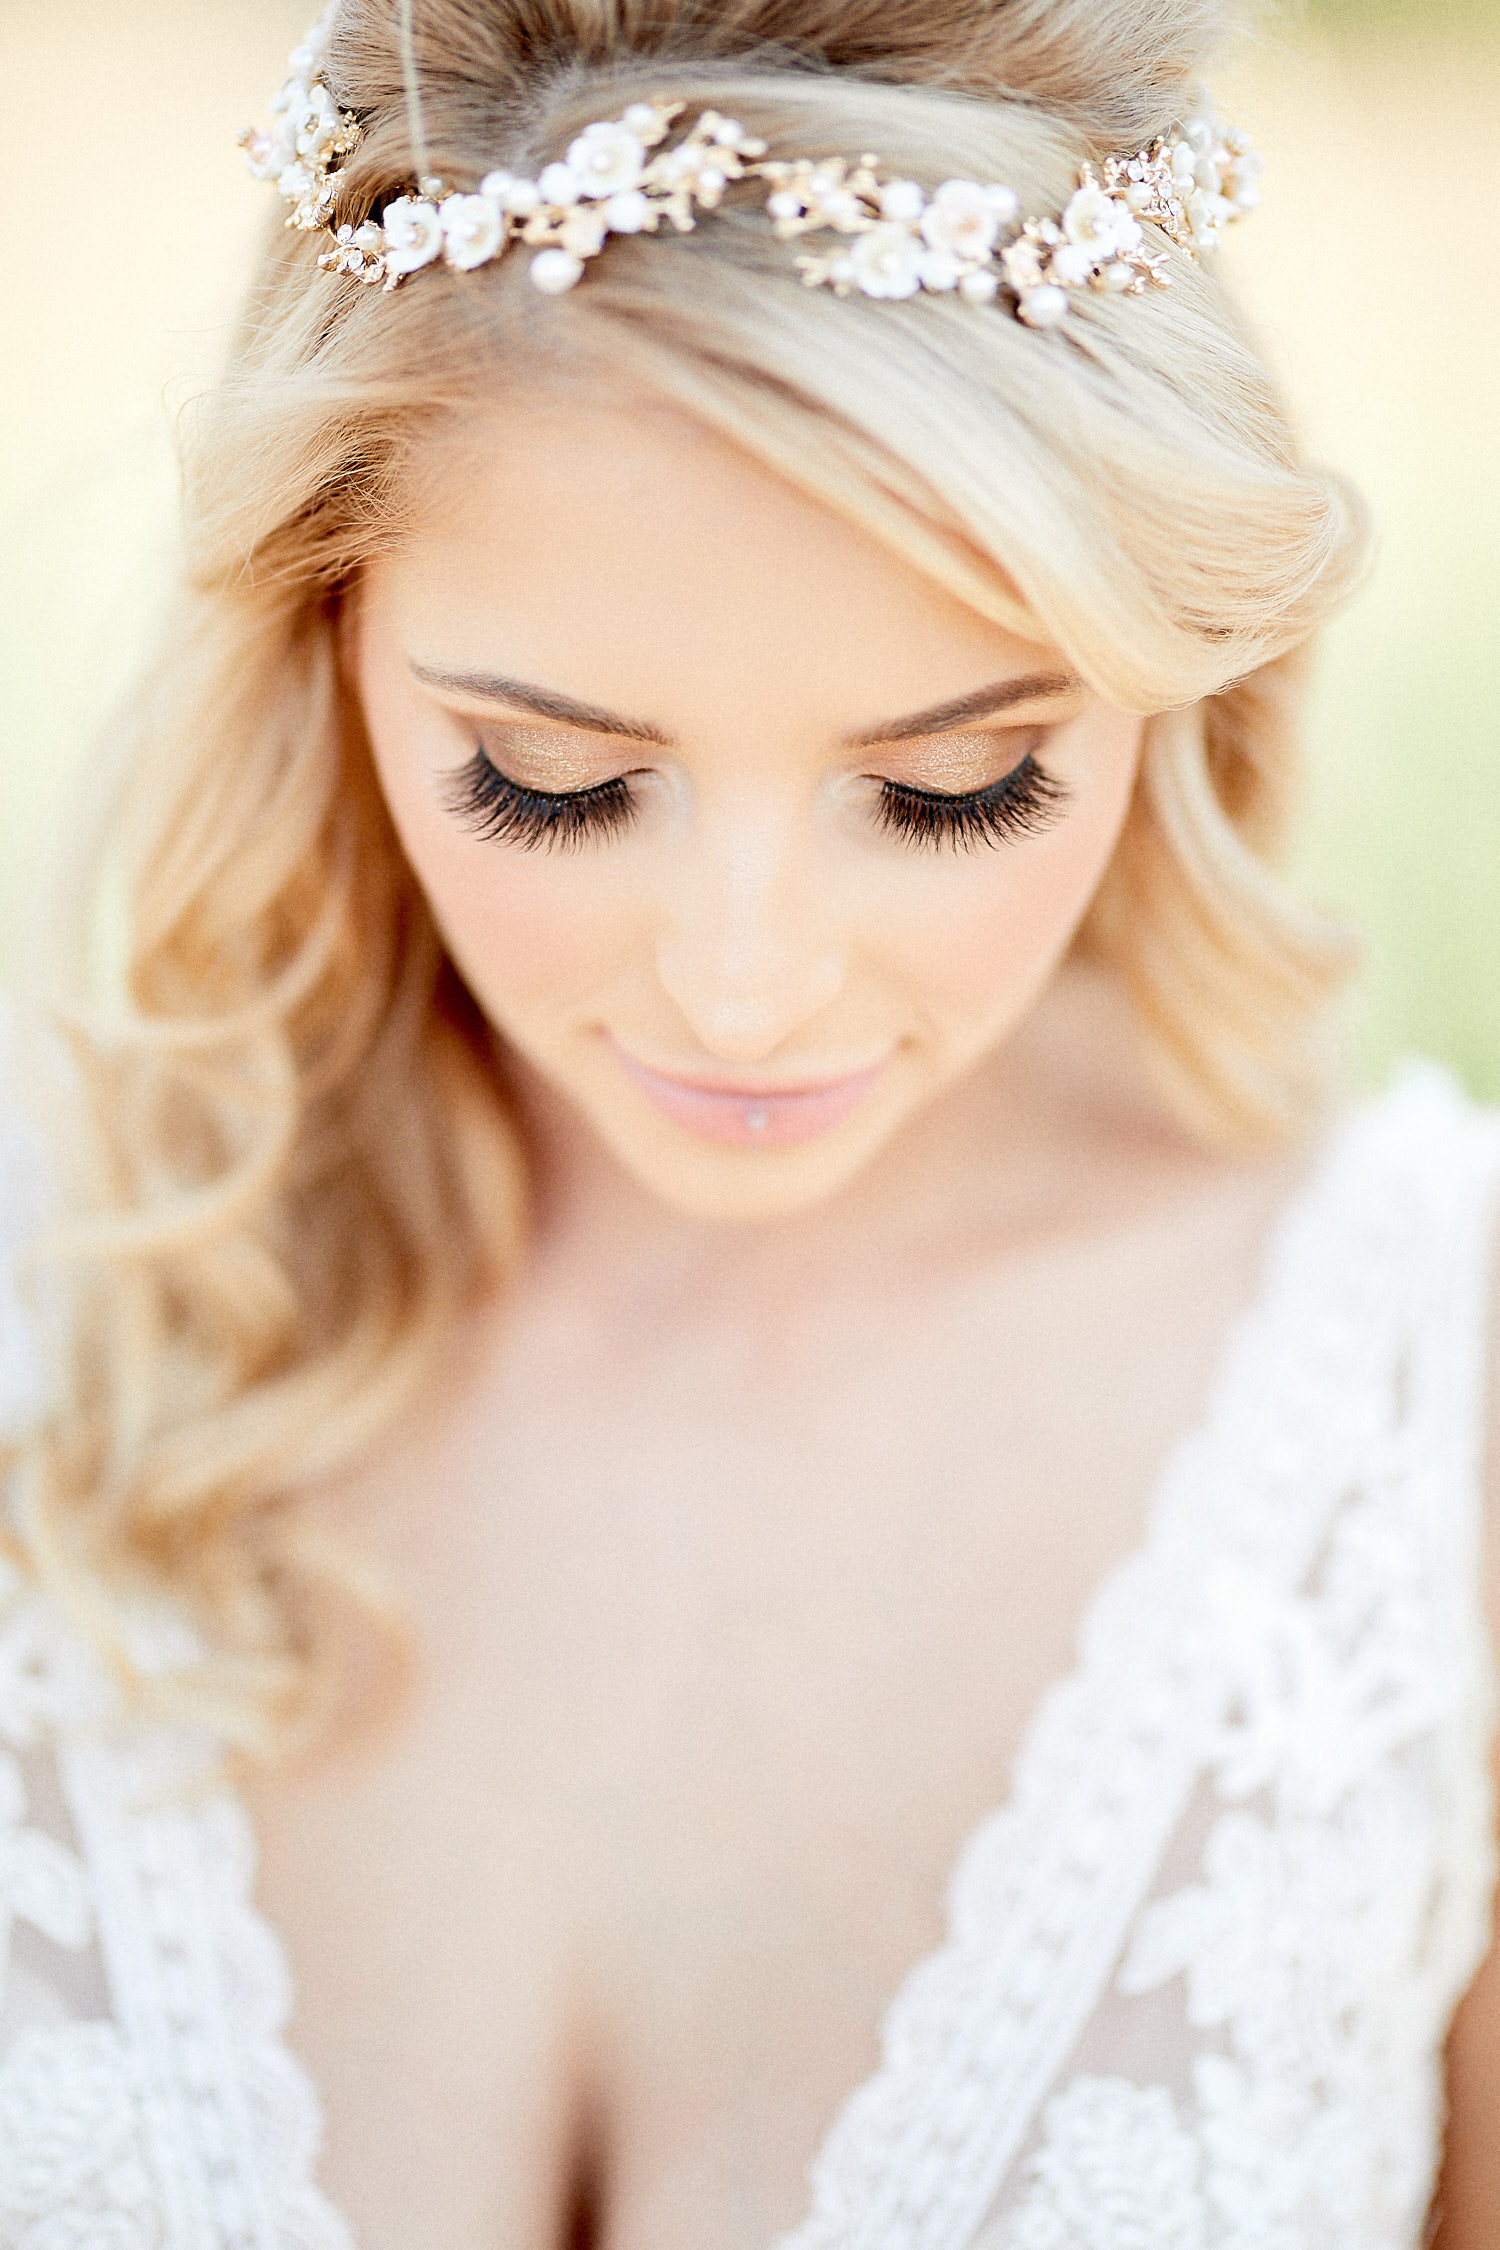 A model in a bridal dress looks down, showing her makeup.